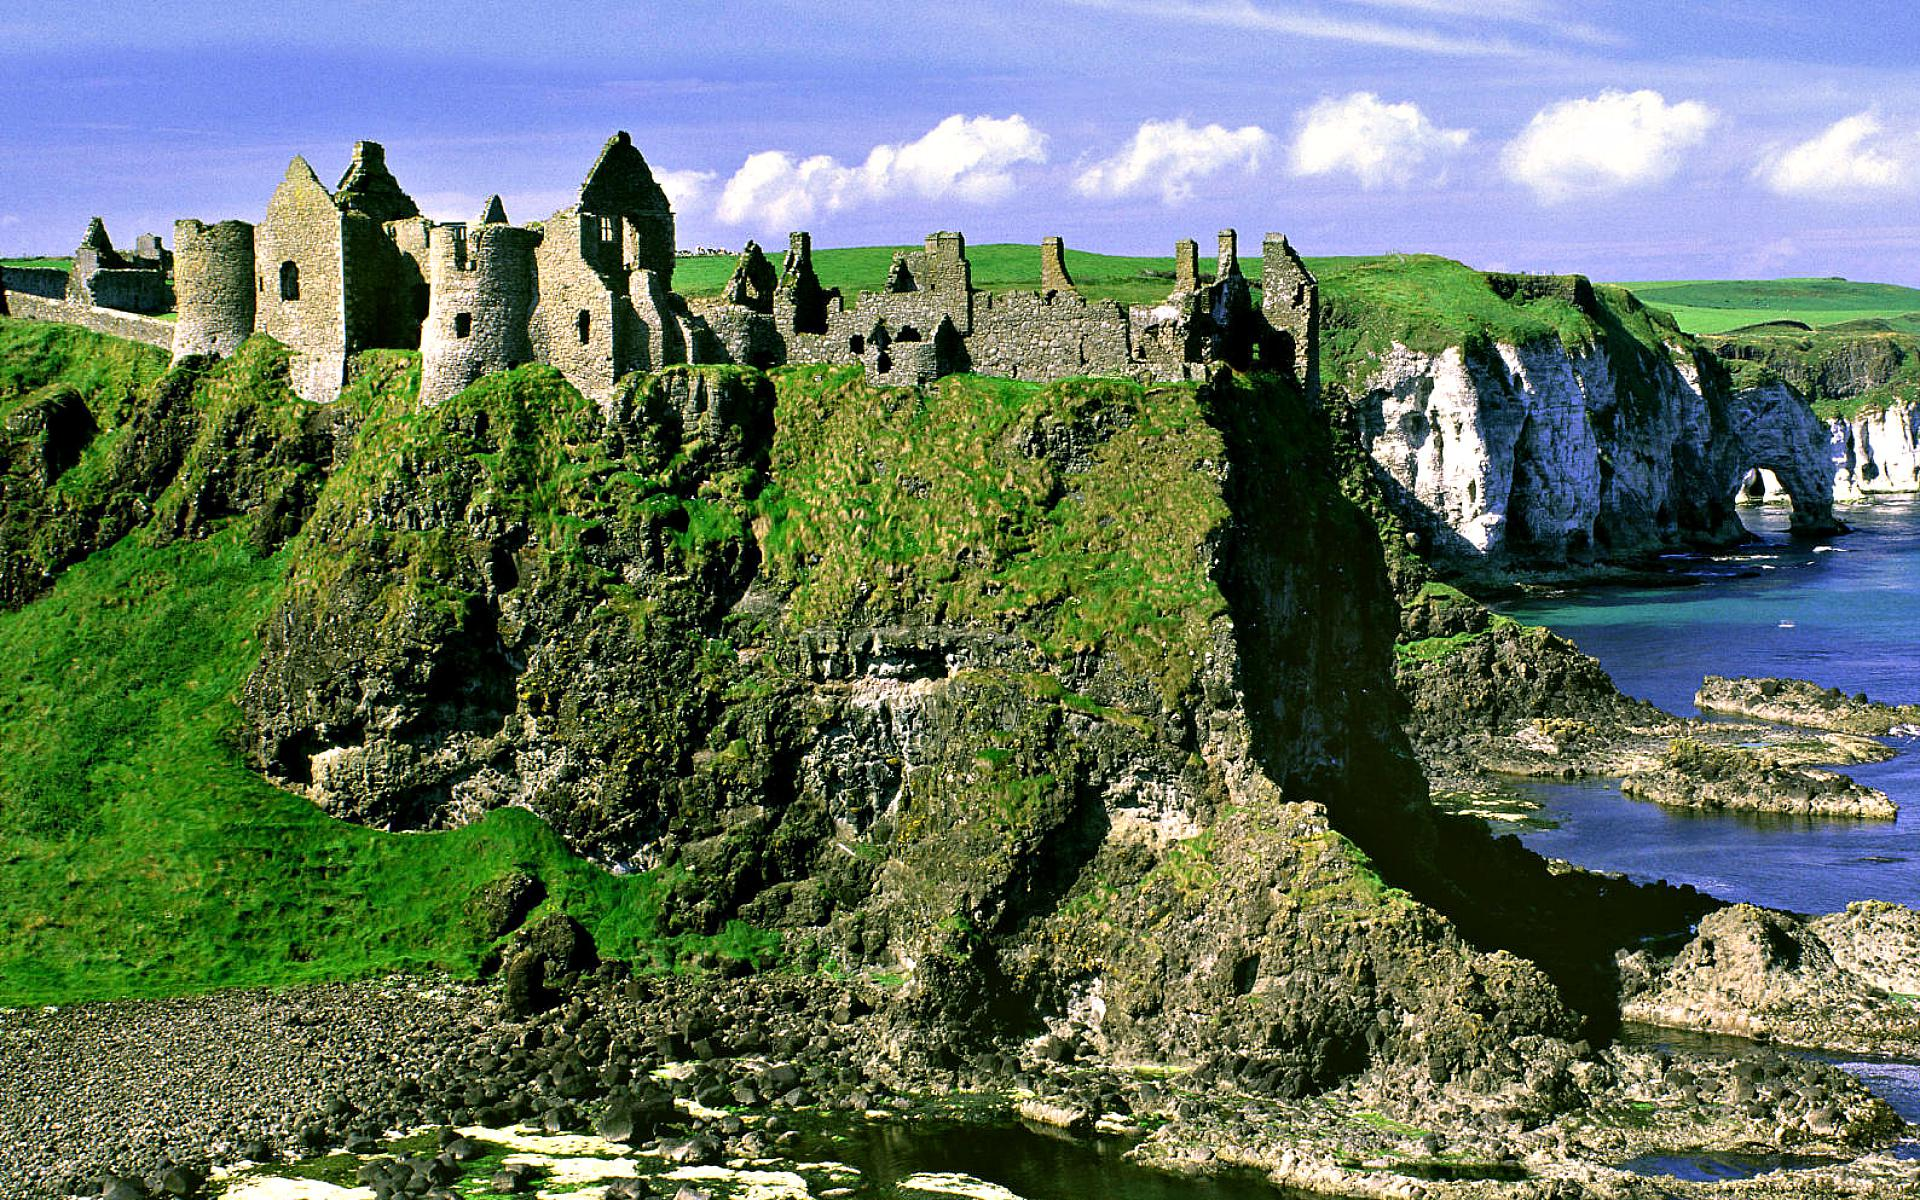 47] Northern Ireland Desktop Wallpaper on WallpaperSafari 1920x1200